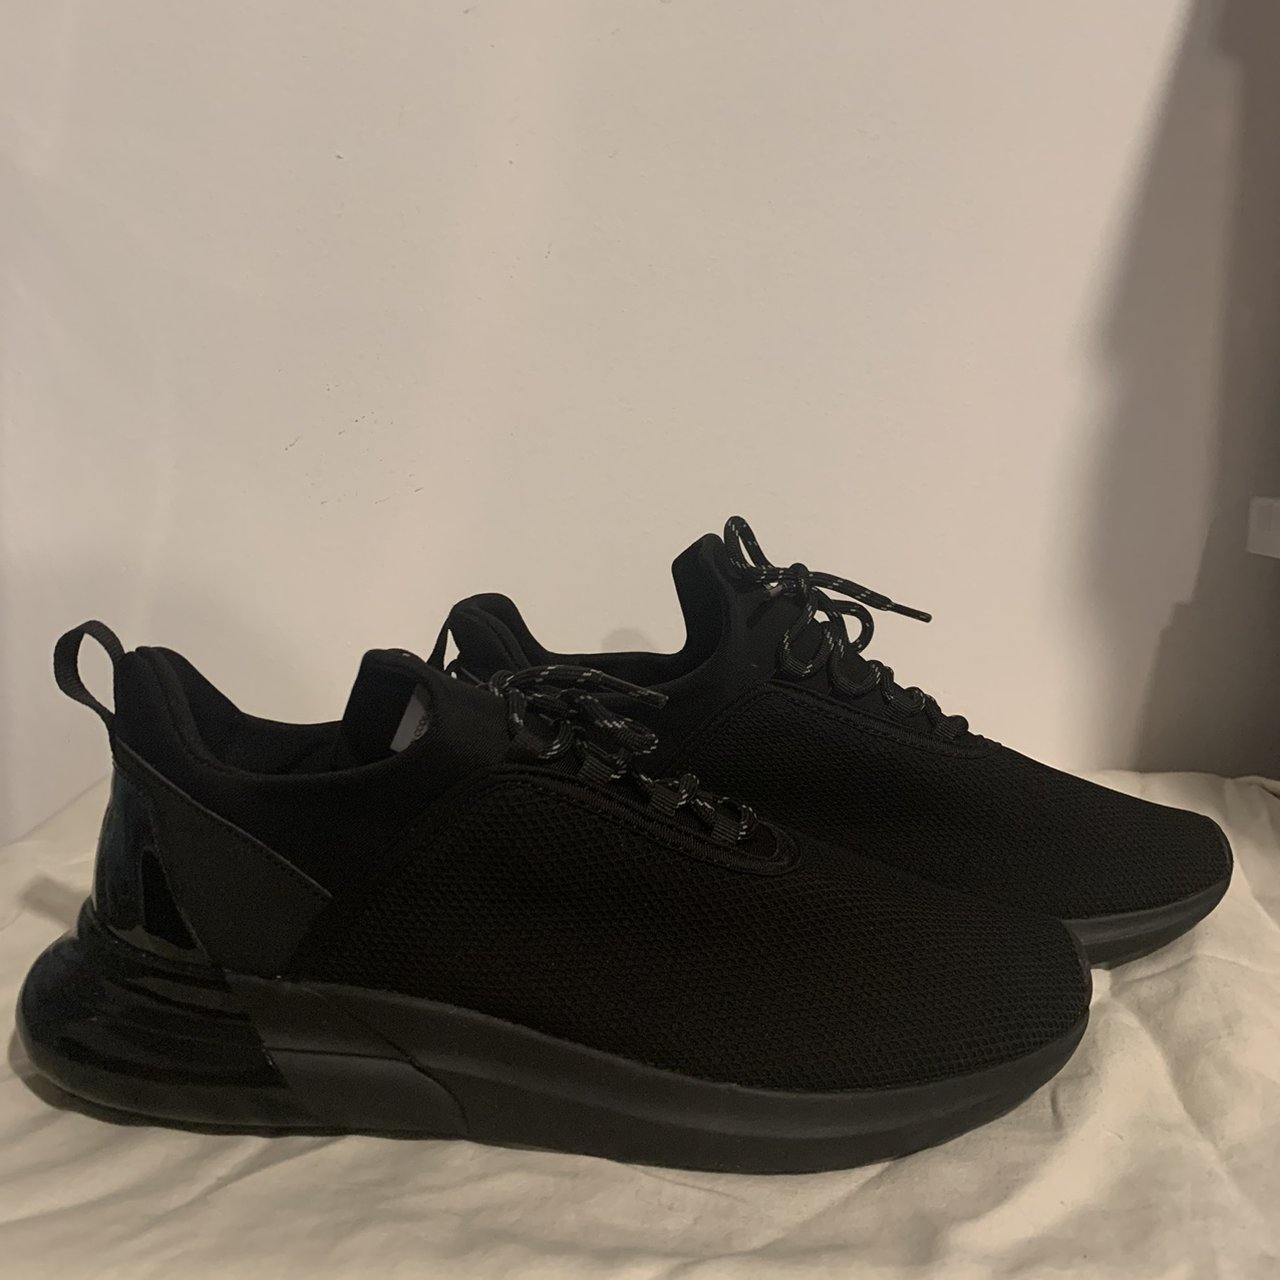 Primark, black trainers with shiny back